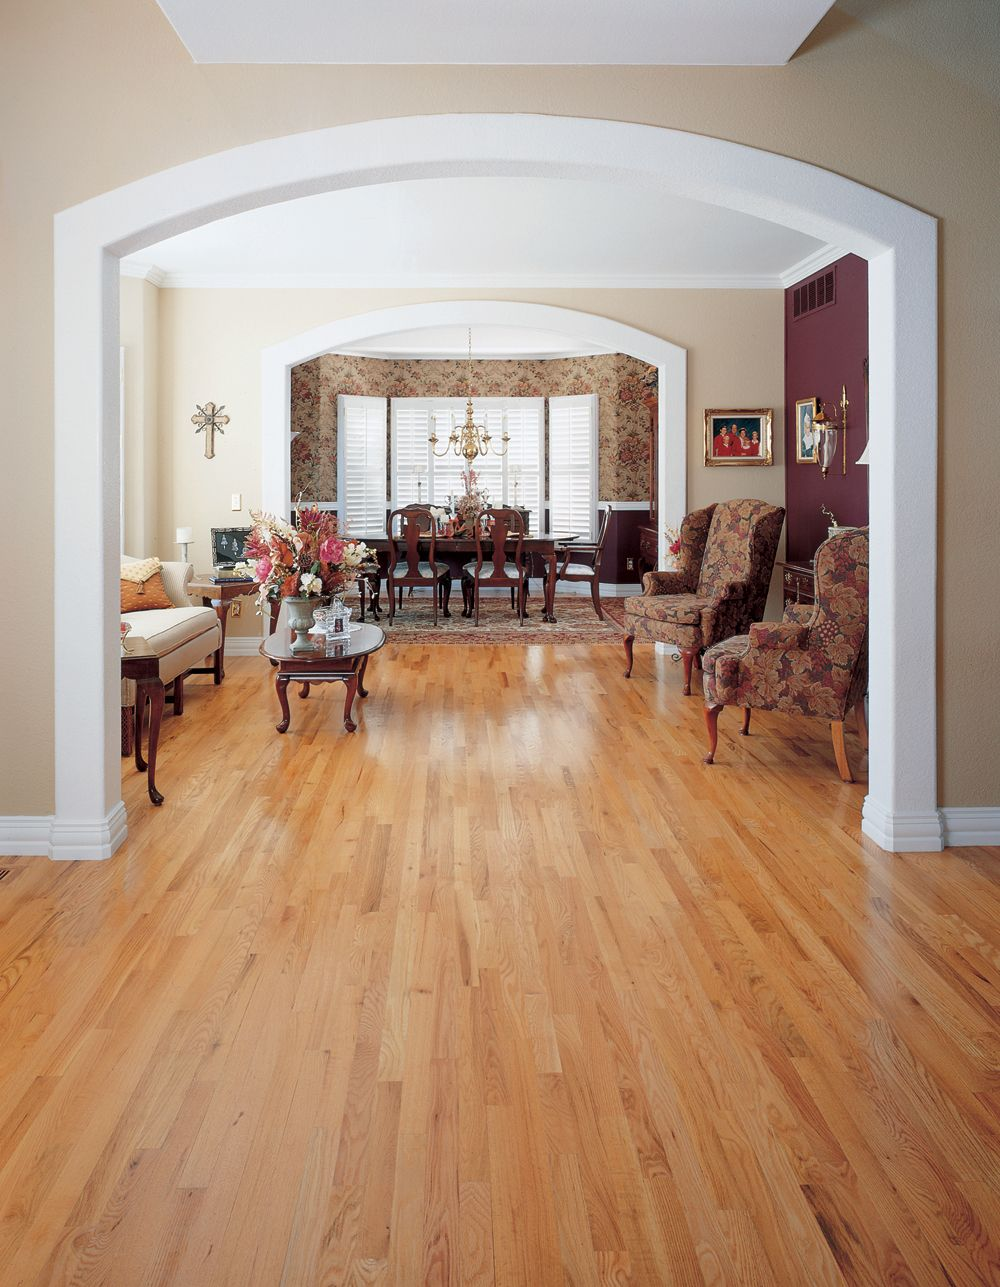 The Homeowner Of This Residence Wanted Floors To Have A Higher Gloss Earance Than Usual